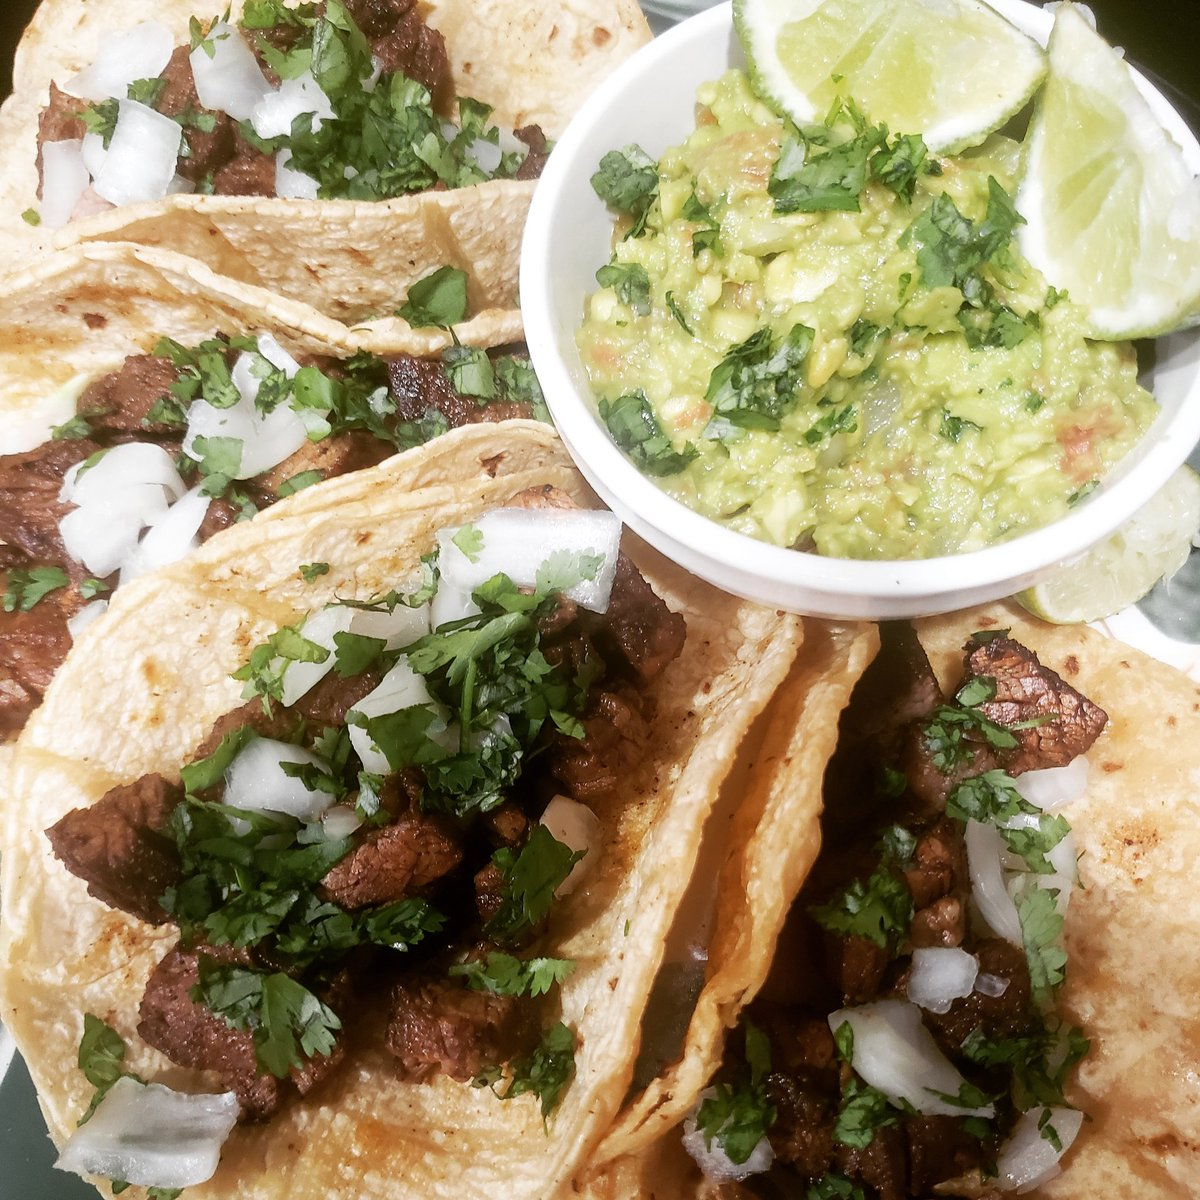 Easy street tacos recipe video is up. Please check this out and don't forget to subscribe to my channel 😃 https://t.co/8K3UWo2EEI  #tacos #taco #beeftacos #mexican #subforsub #youtube #texmexfood #texmex #food #mexixancuisine #TacoTuesday #besttacos #bts #blackpinkh #foodie https://t.co/RkfKqZUDoj